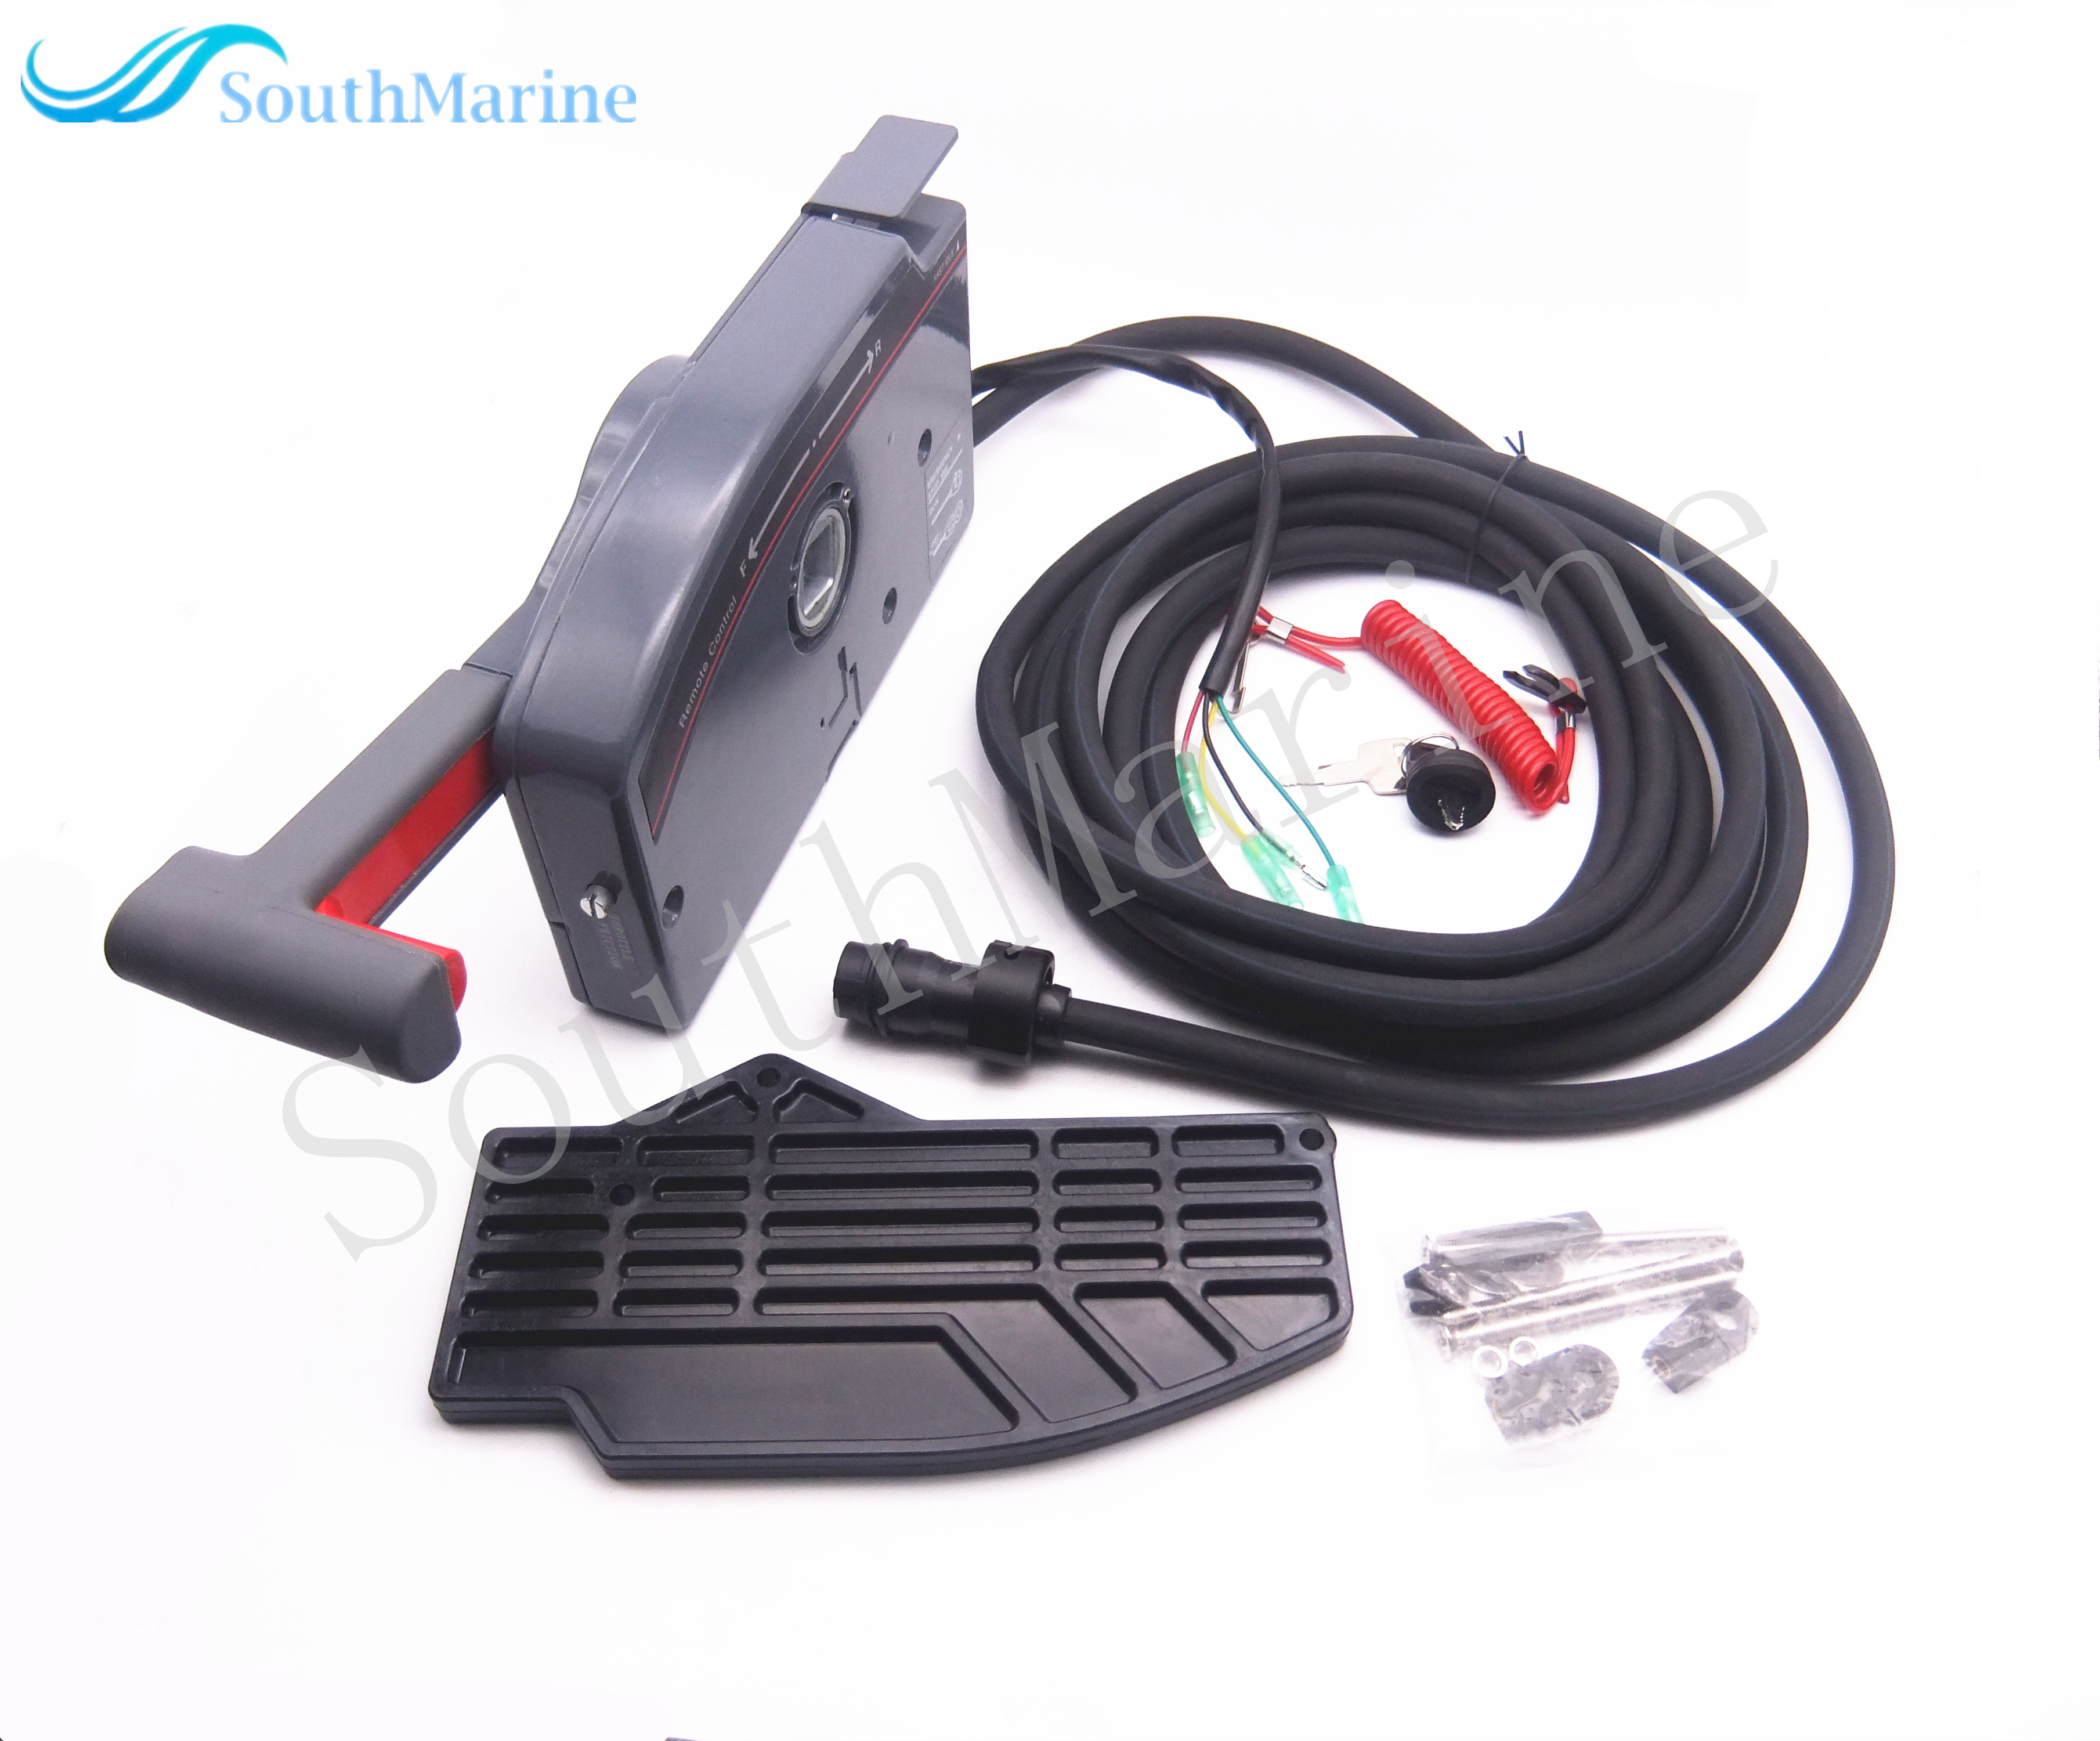 Remote Control Box Assy 703 48205 16 703 48207 1B 703 48207 17 For Yamaha Outboard